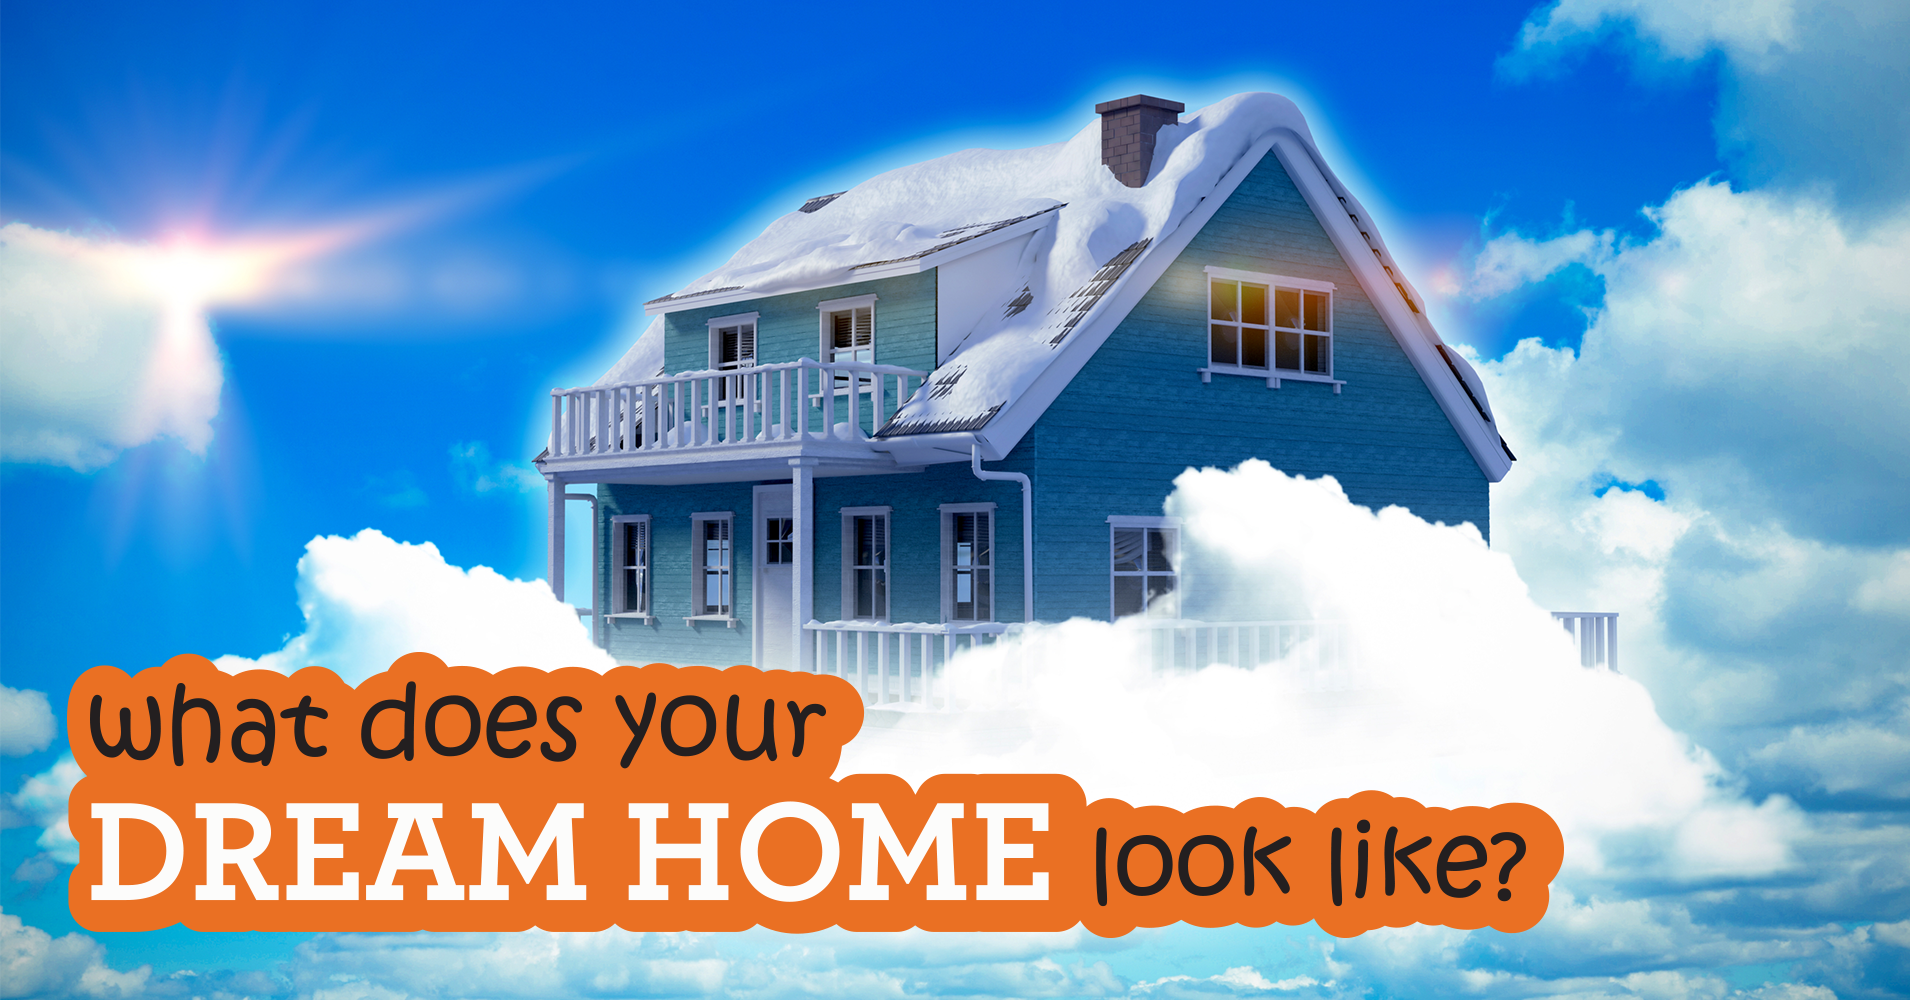 Your Dream Home What Does Your Dream Home Look Like Quiz